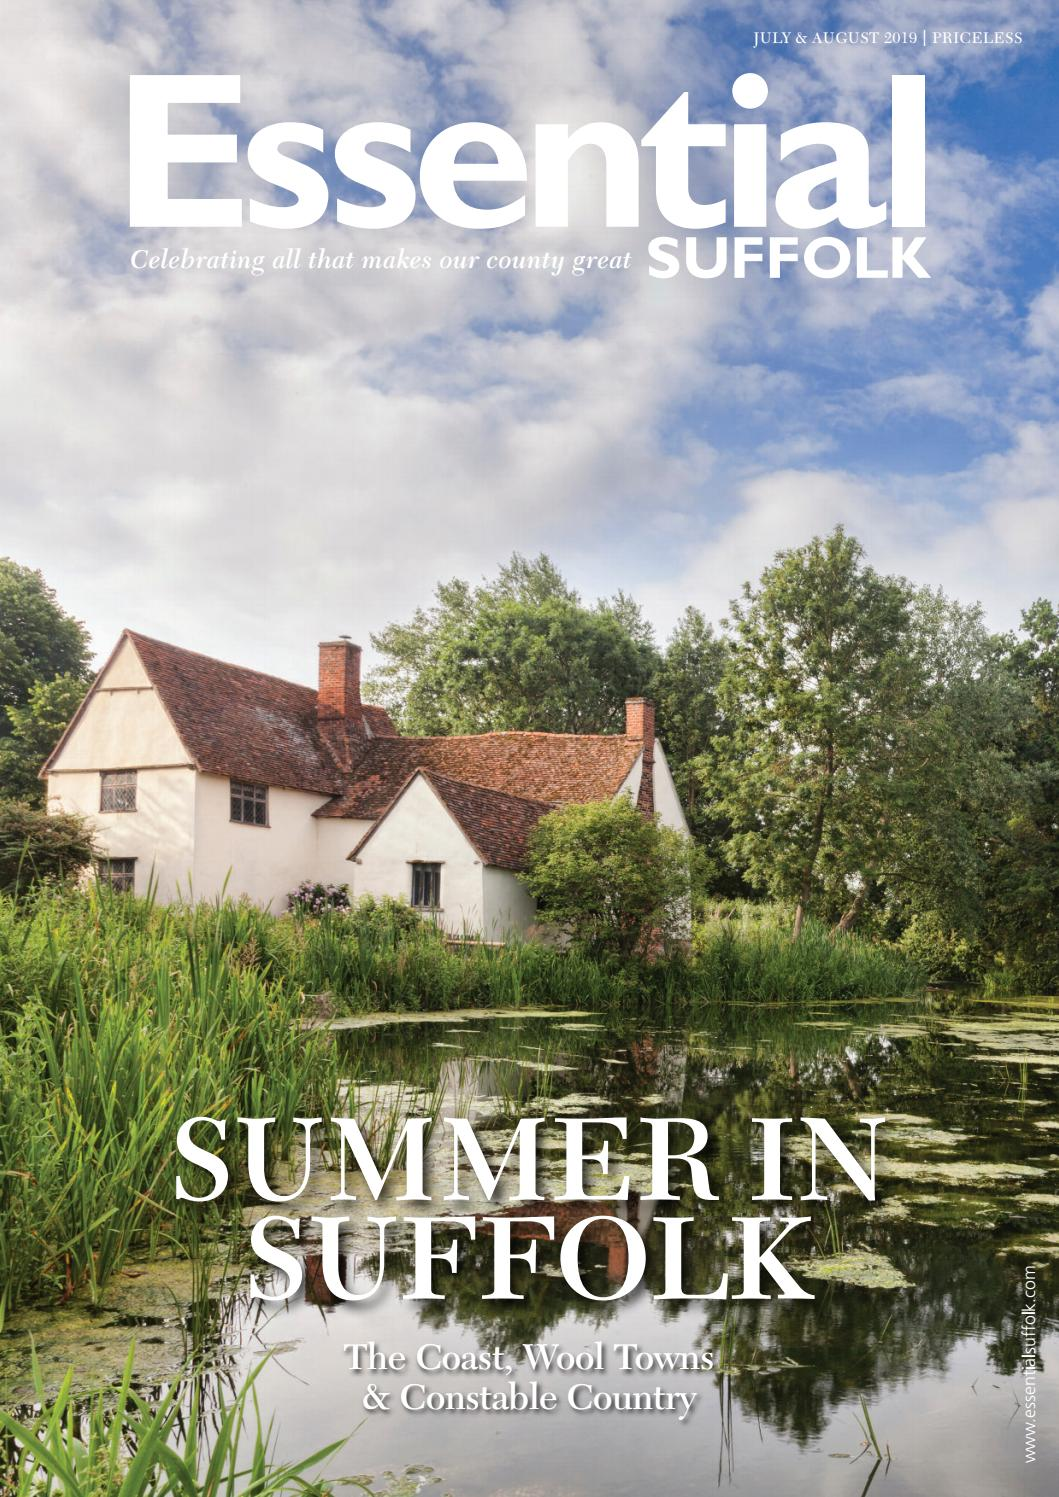 Essential Suffolk July and August 2019 by Achieve More Media - issuu